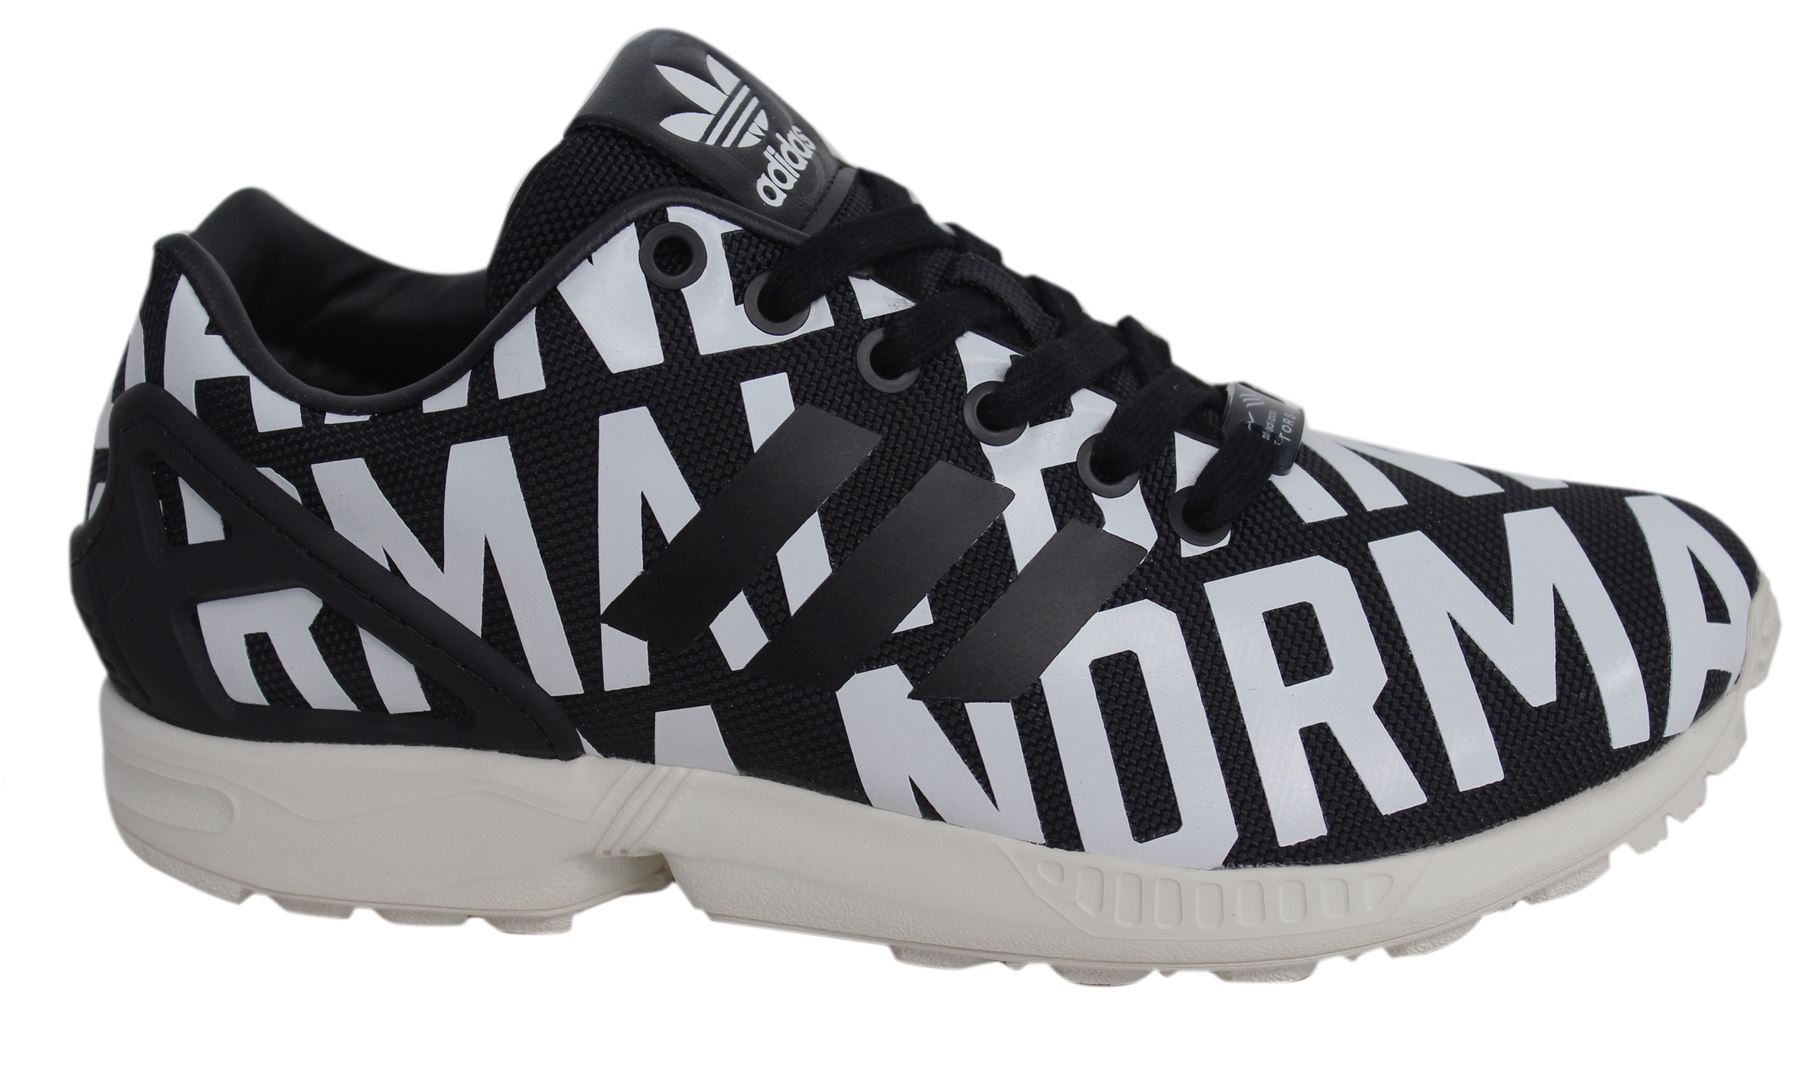 02e7c531d5efe Adidas Originals Rita Ora ZX Flux Lace Up Black White Womens Trainers  B72683 D28